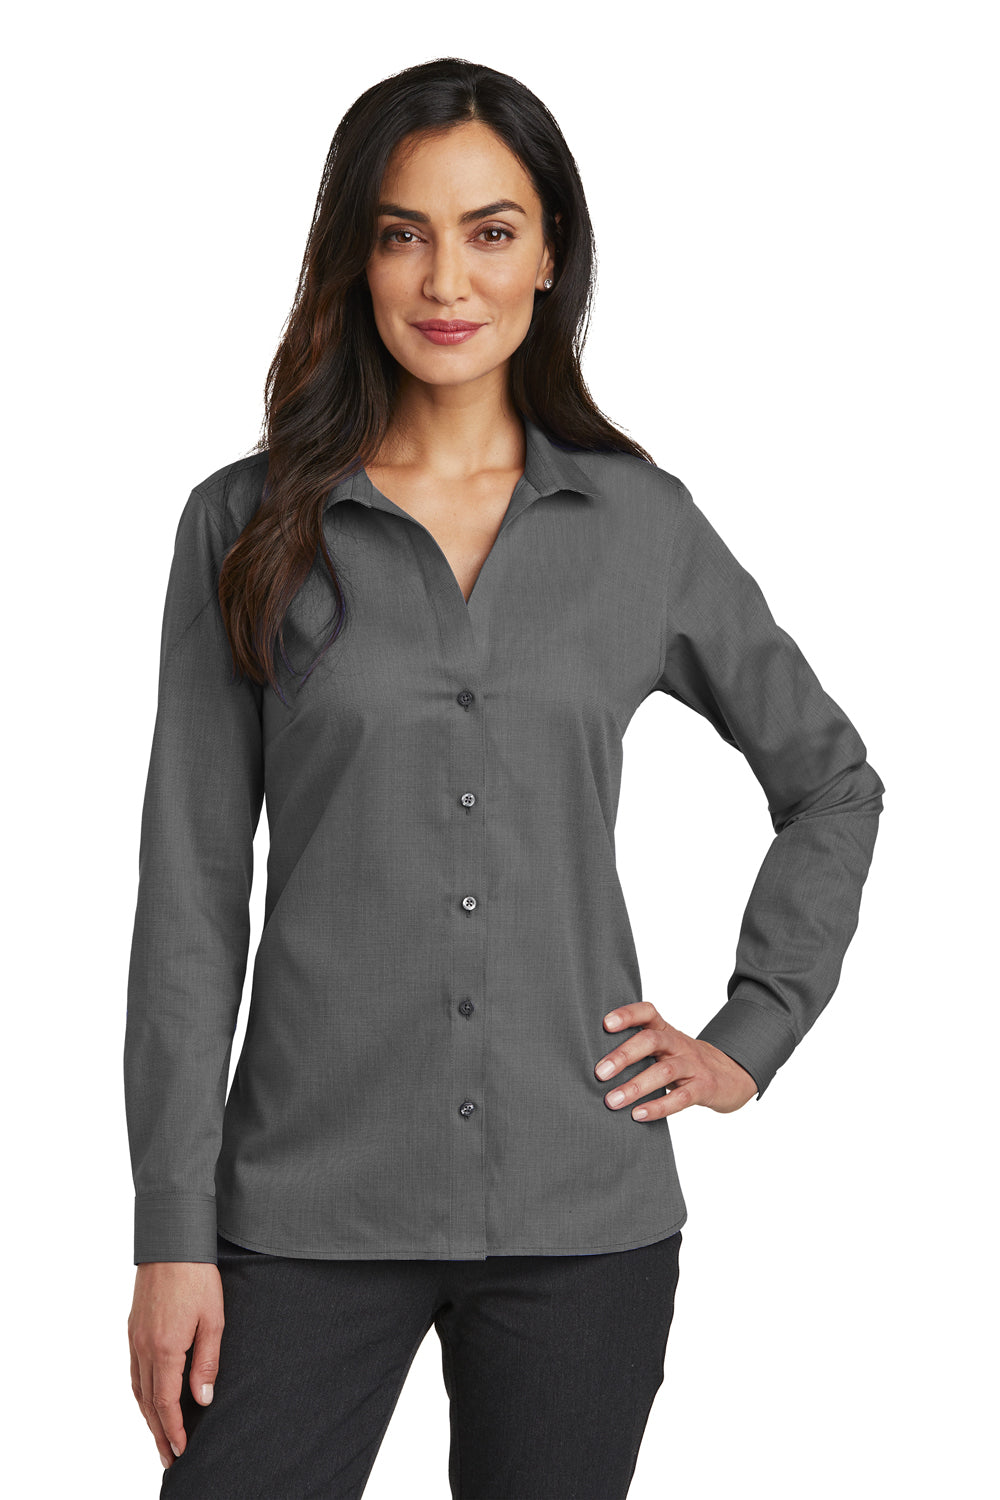 Red House RH470 Womens Nailhead Wrinkle Resistant Long Sleeve Button Down Shirt Black Front